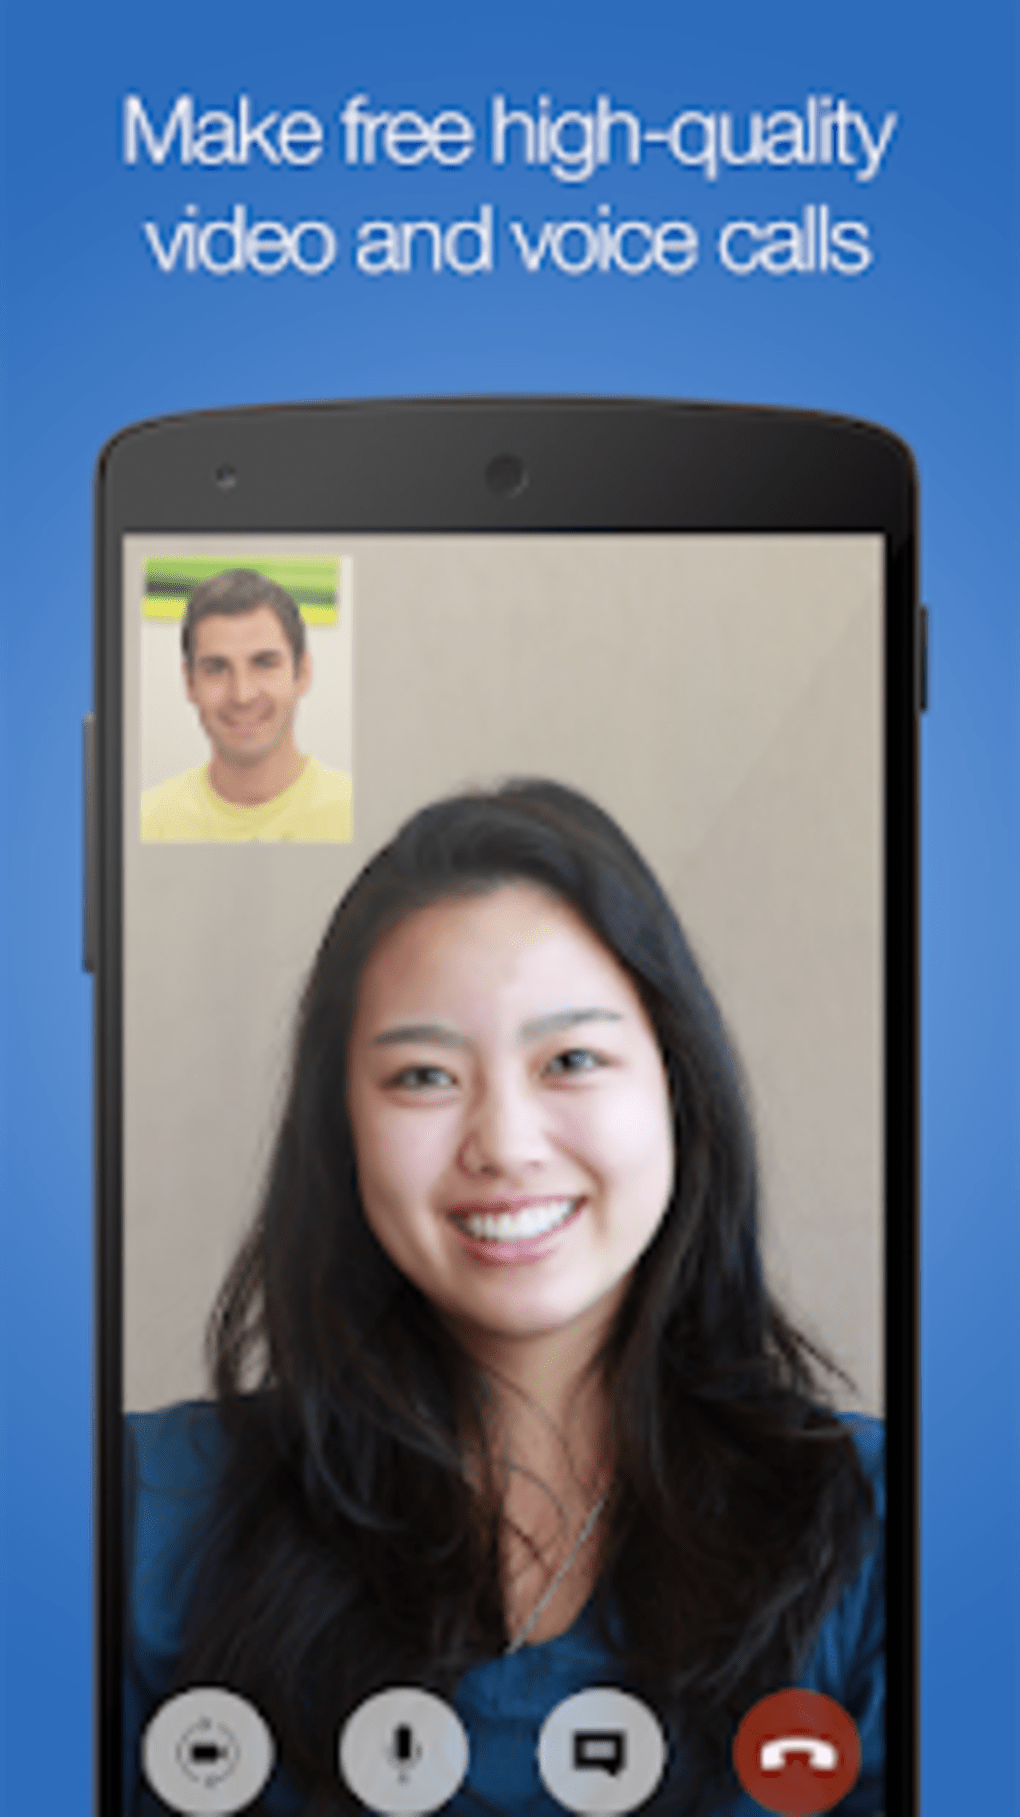 imo free HD video calls and chat for Android - Download